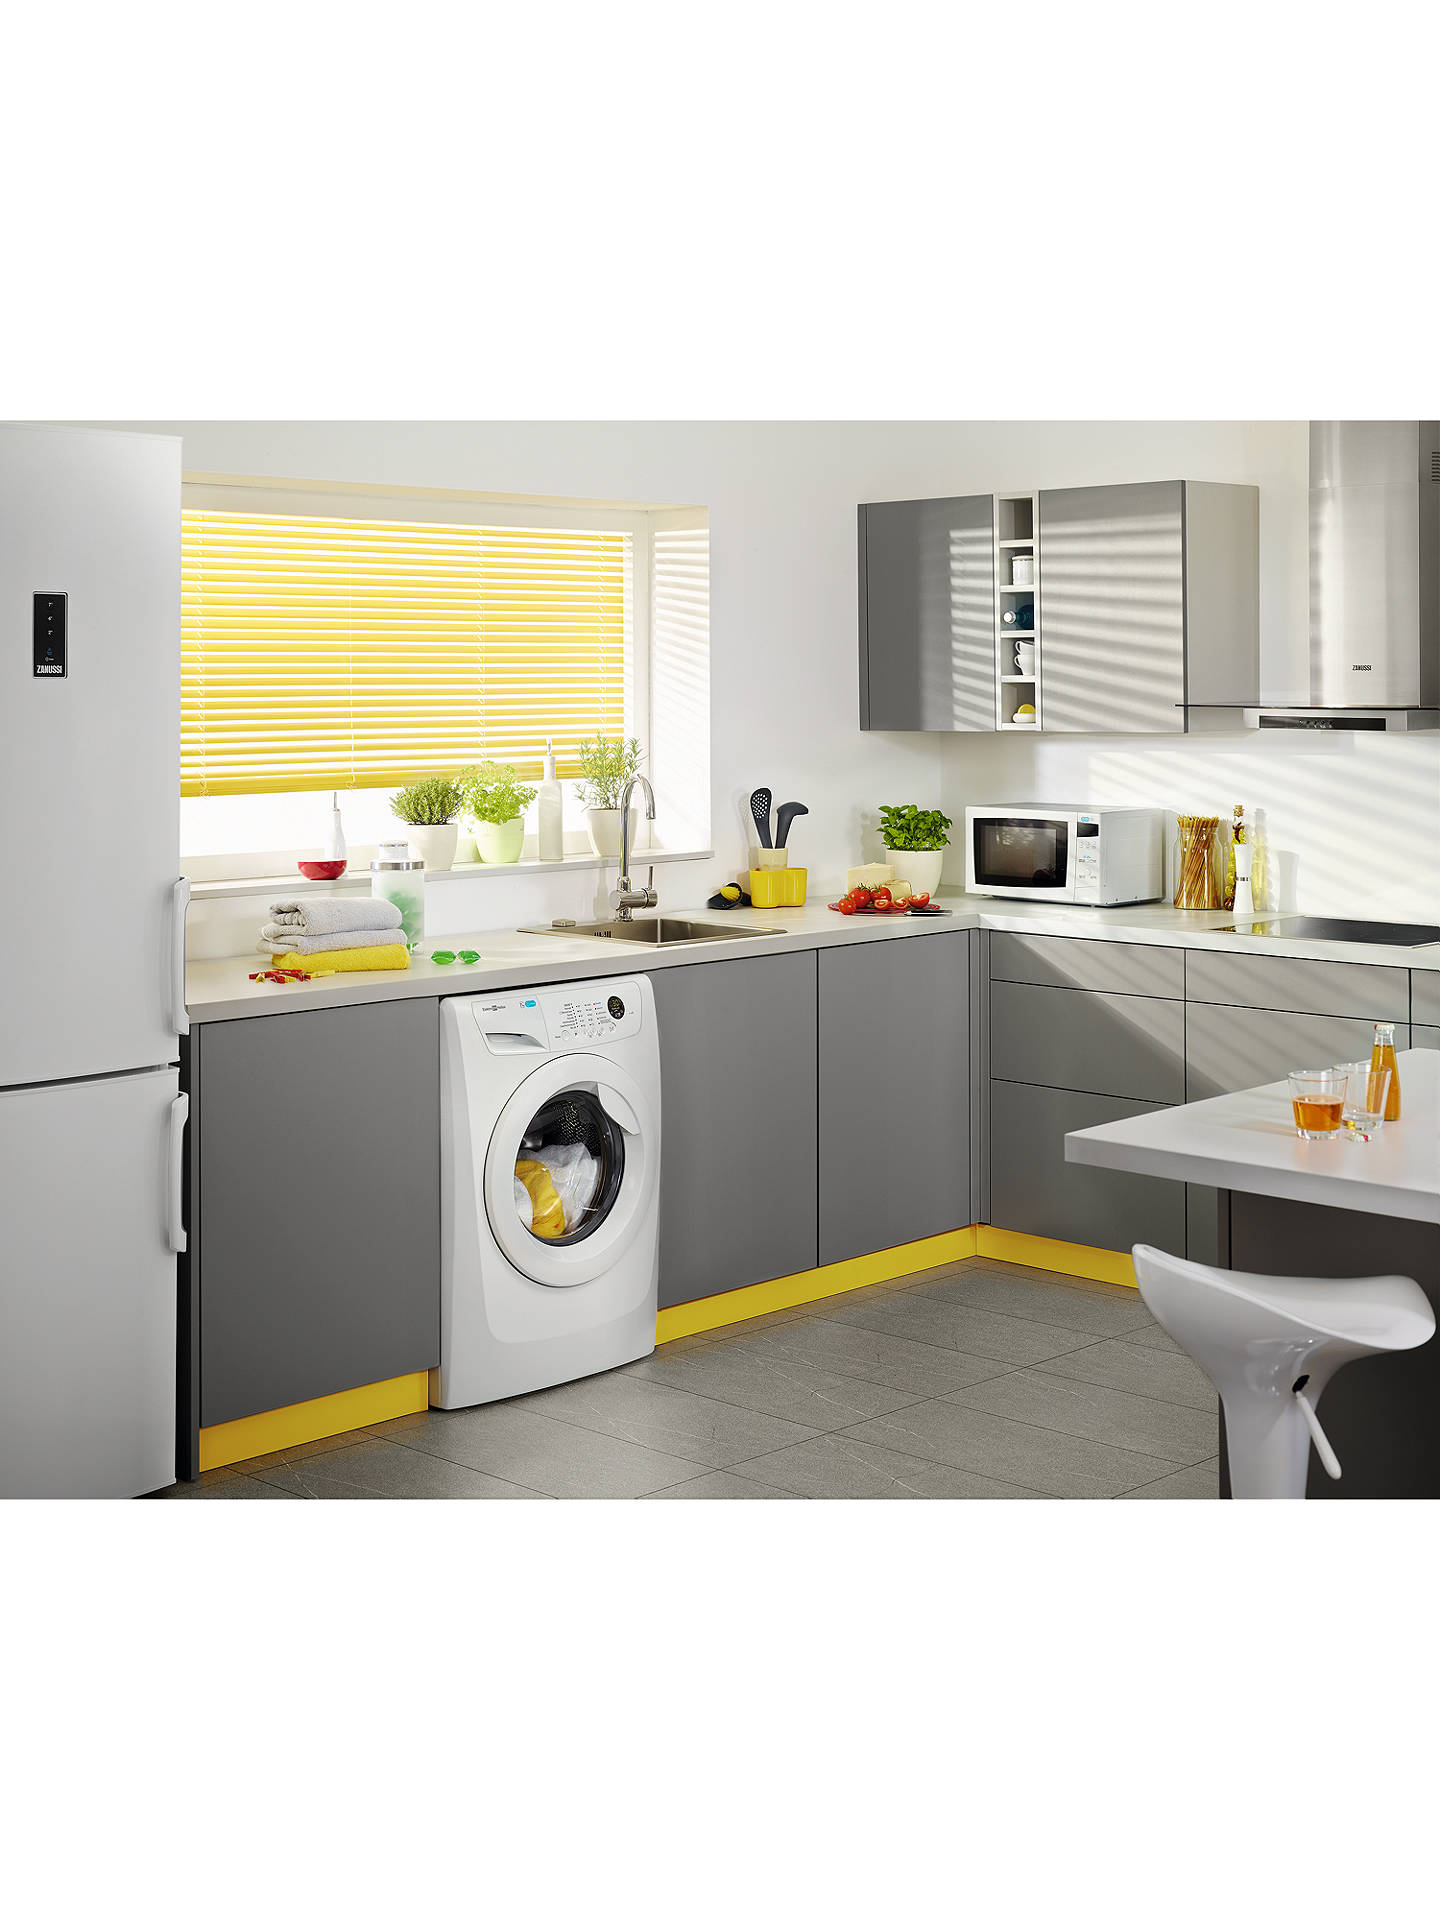 Buy Zanussi ZWF81463W Freestanding Washing Machine, 8kg Load, A+++ Energy Rating, 1400rpm Spin, White Online at johnlewis.com